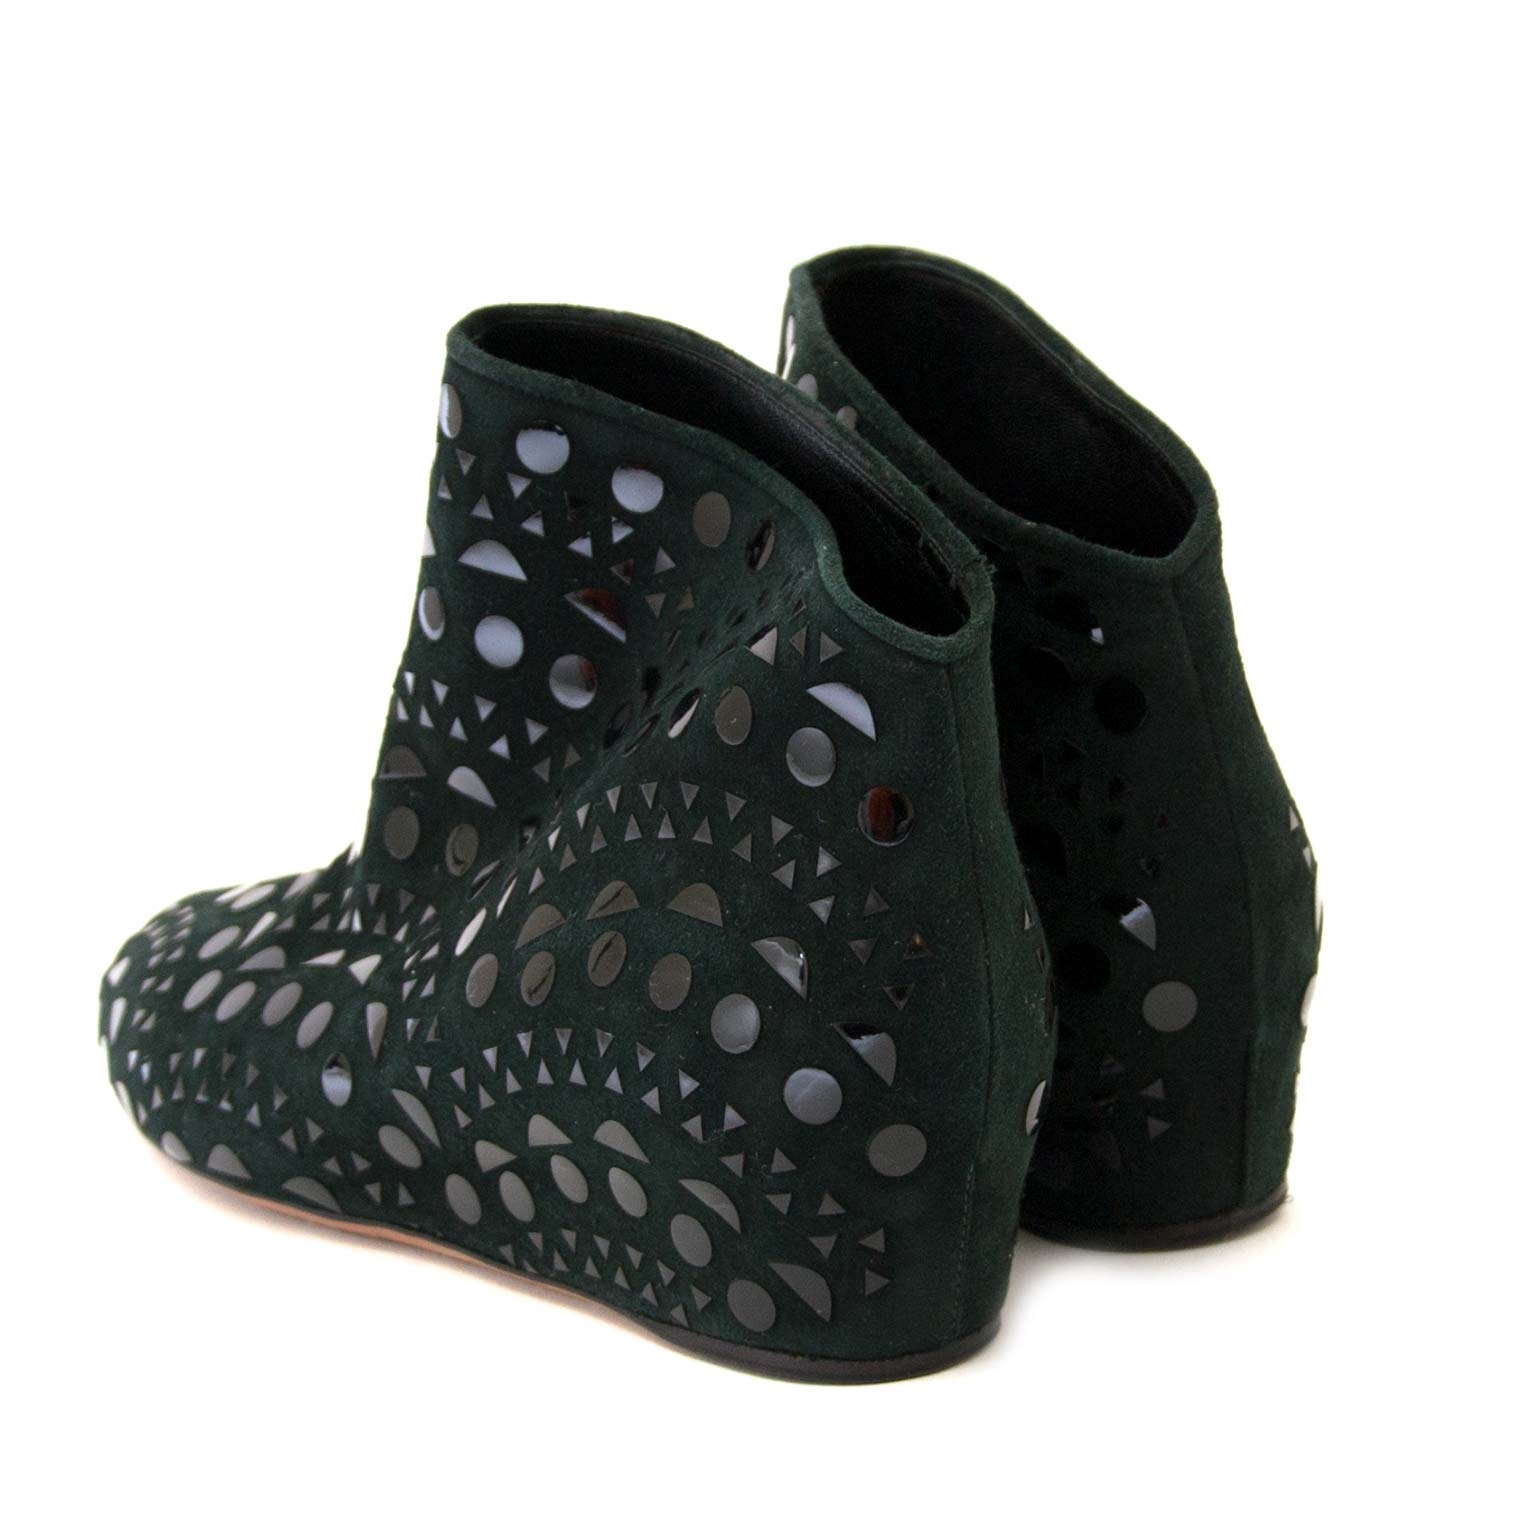 alaïa studded suede wedge ankle boots now for sale at labellov vintage fashion webshop belgium